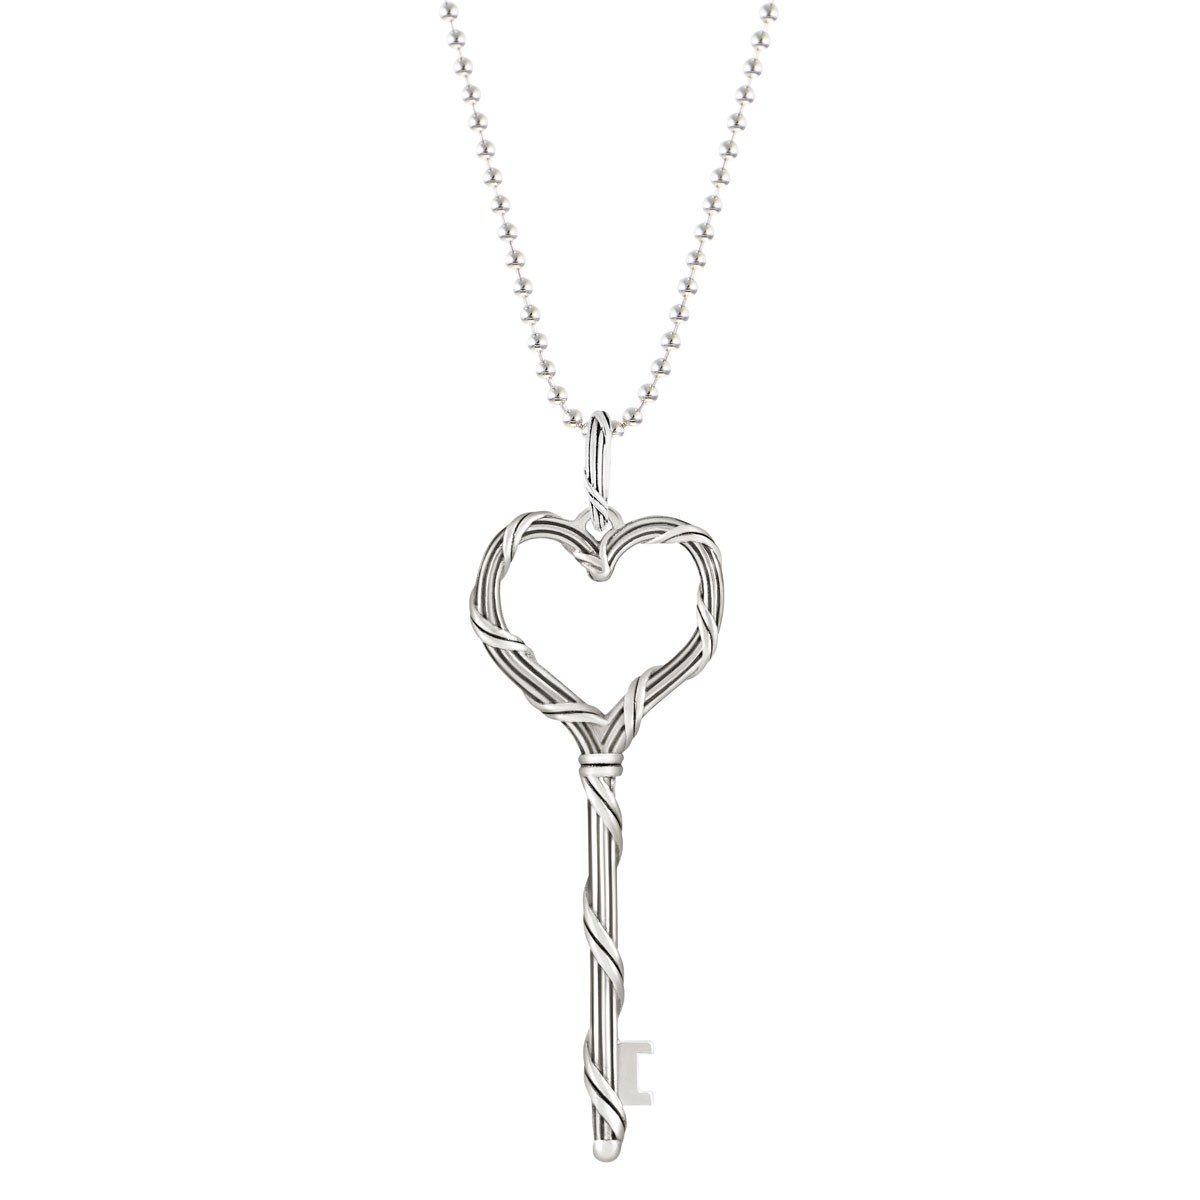 Signature Classic Heart Key Necklace on beaded chain in sterling silver